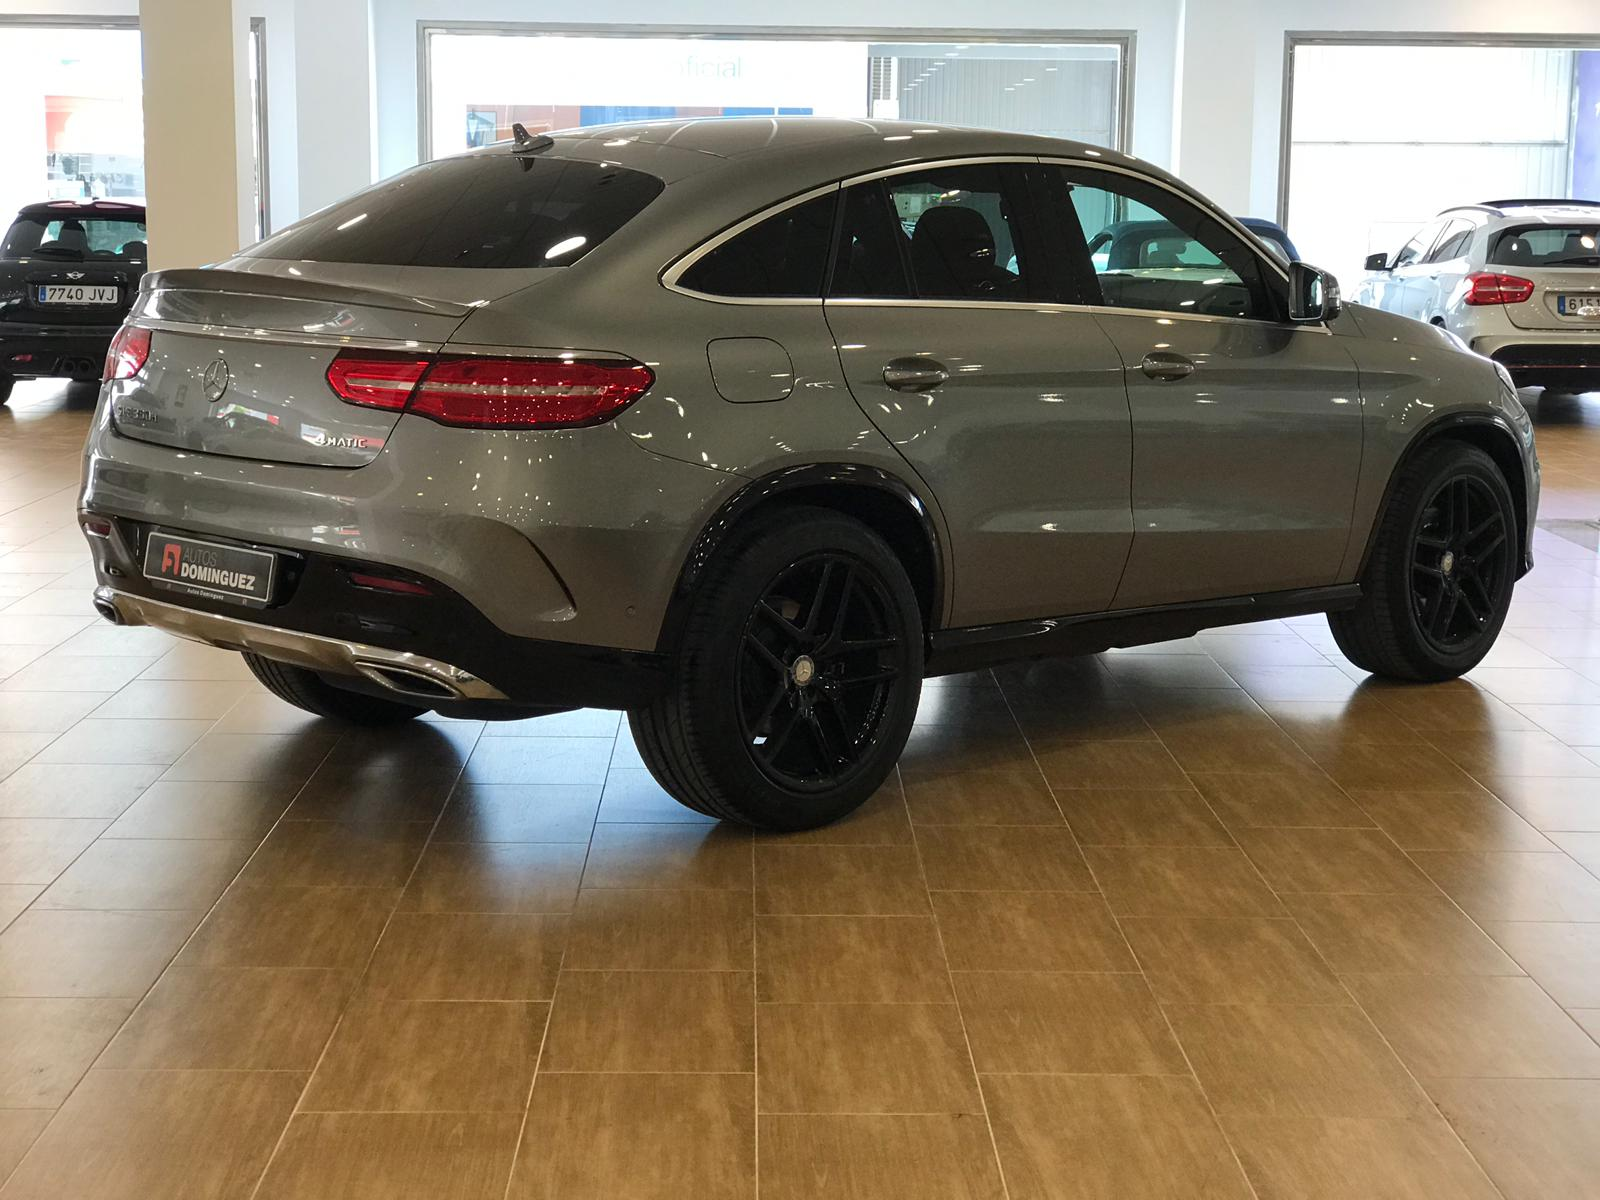 MERCEDES GLE 350d COUPÉ 4MATIC 258 CV AUTO